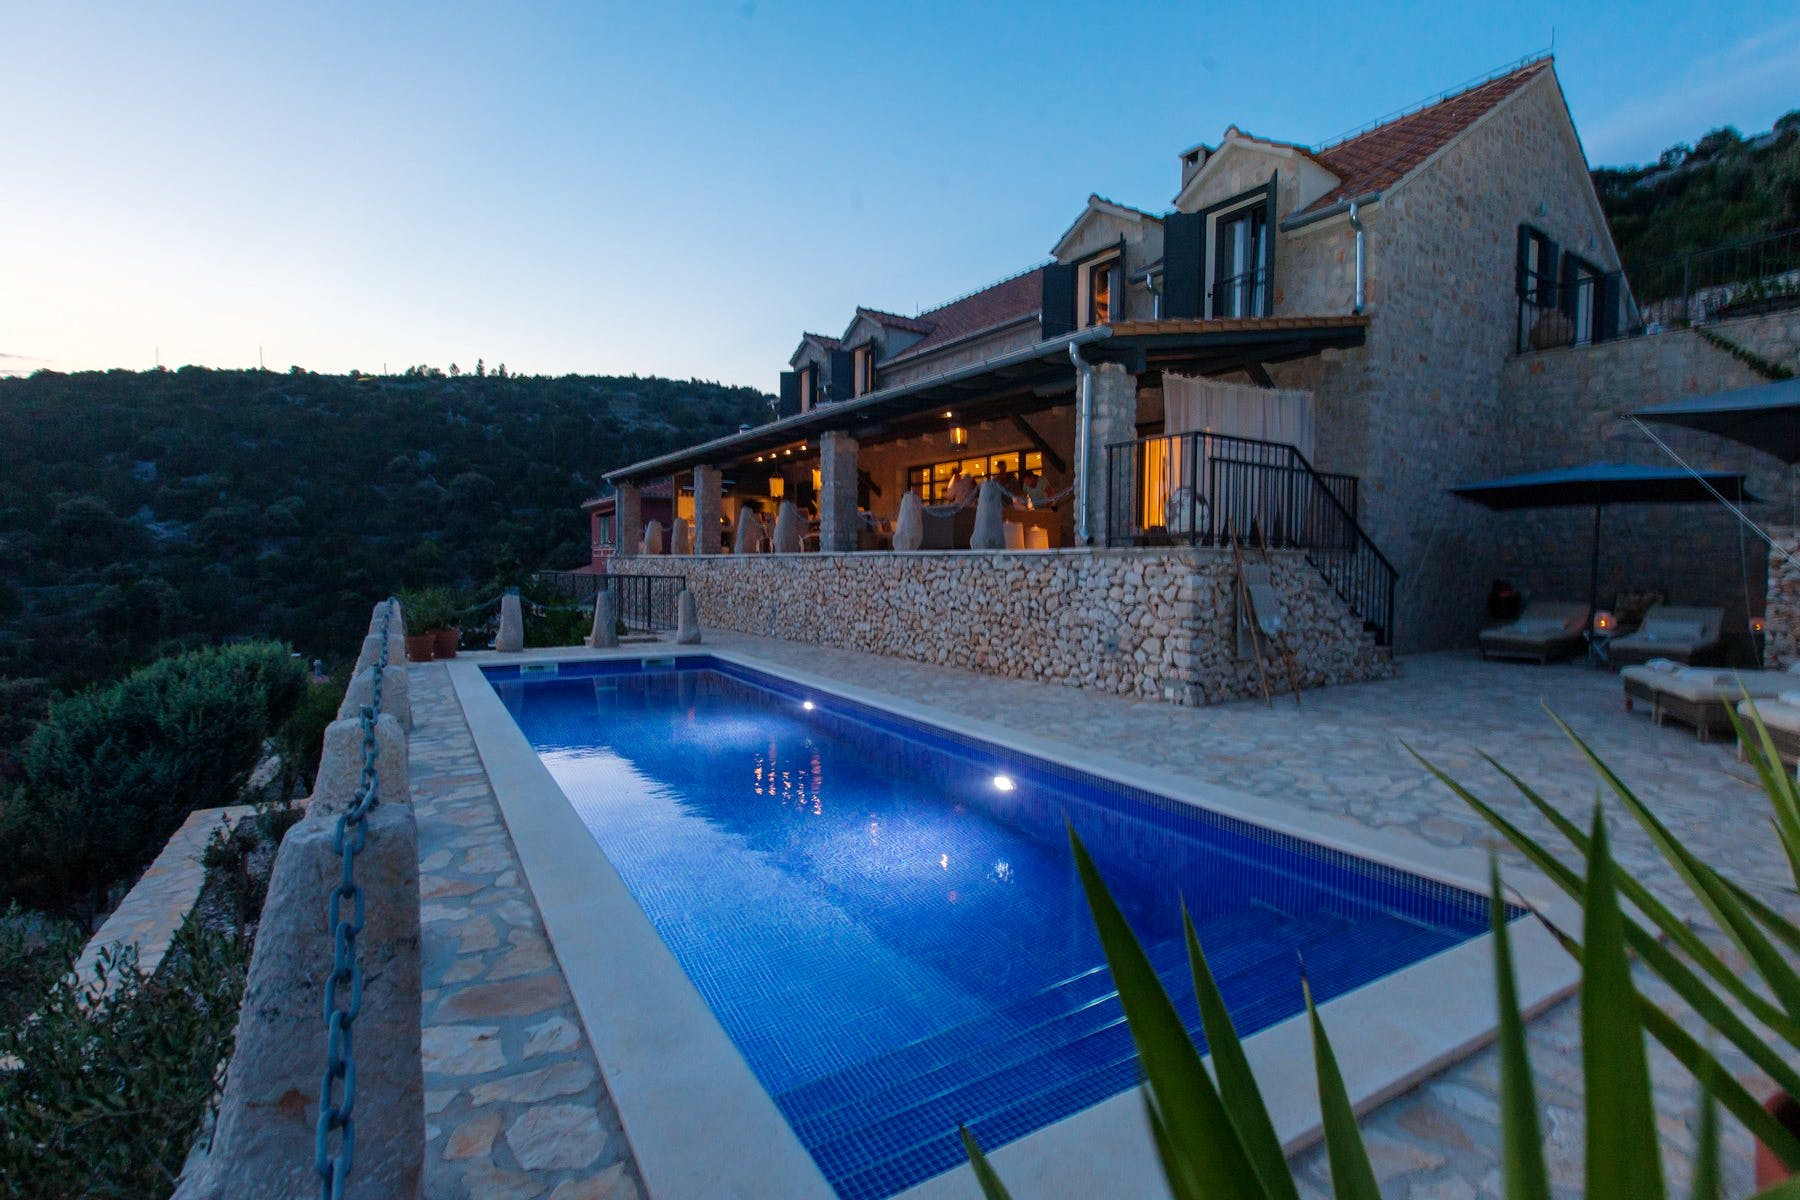 Night view of the villa and pool